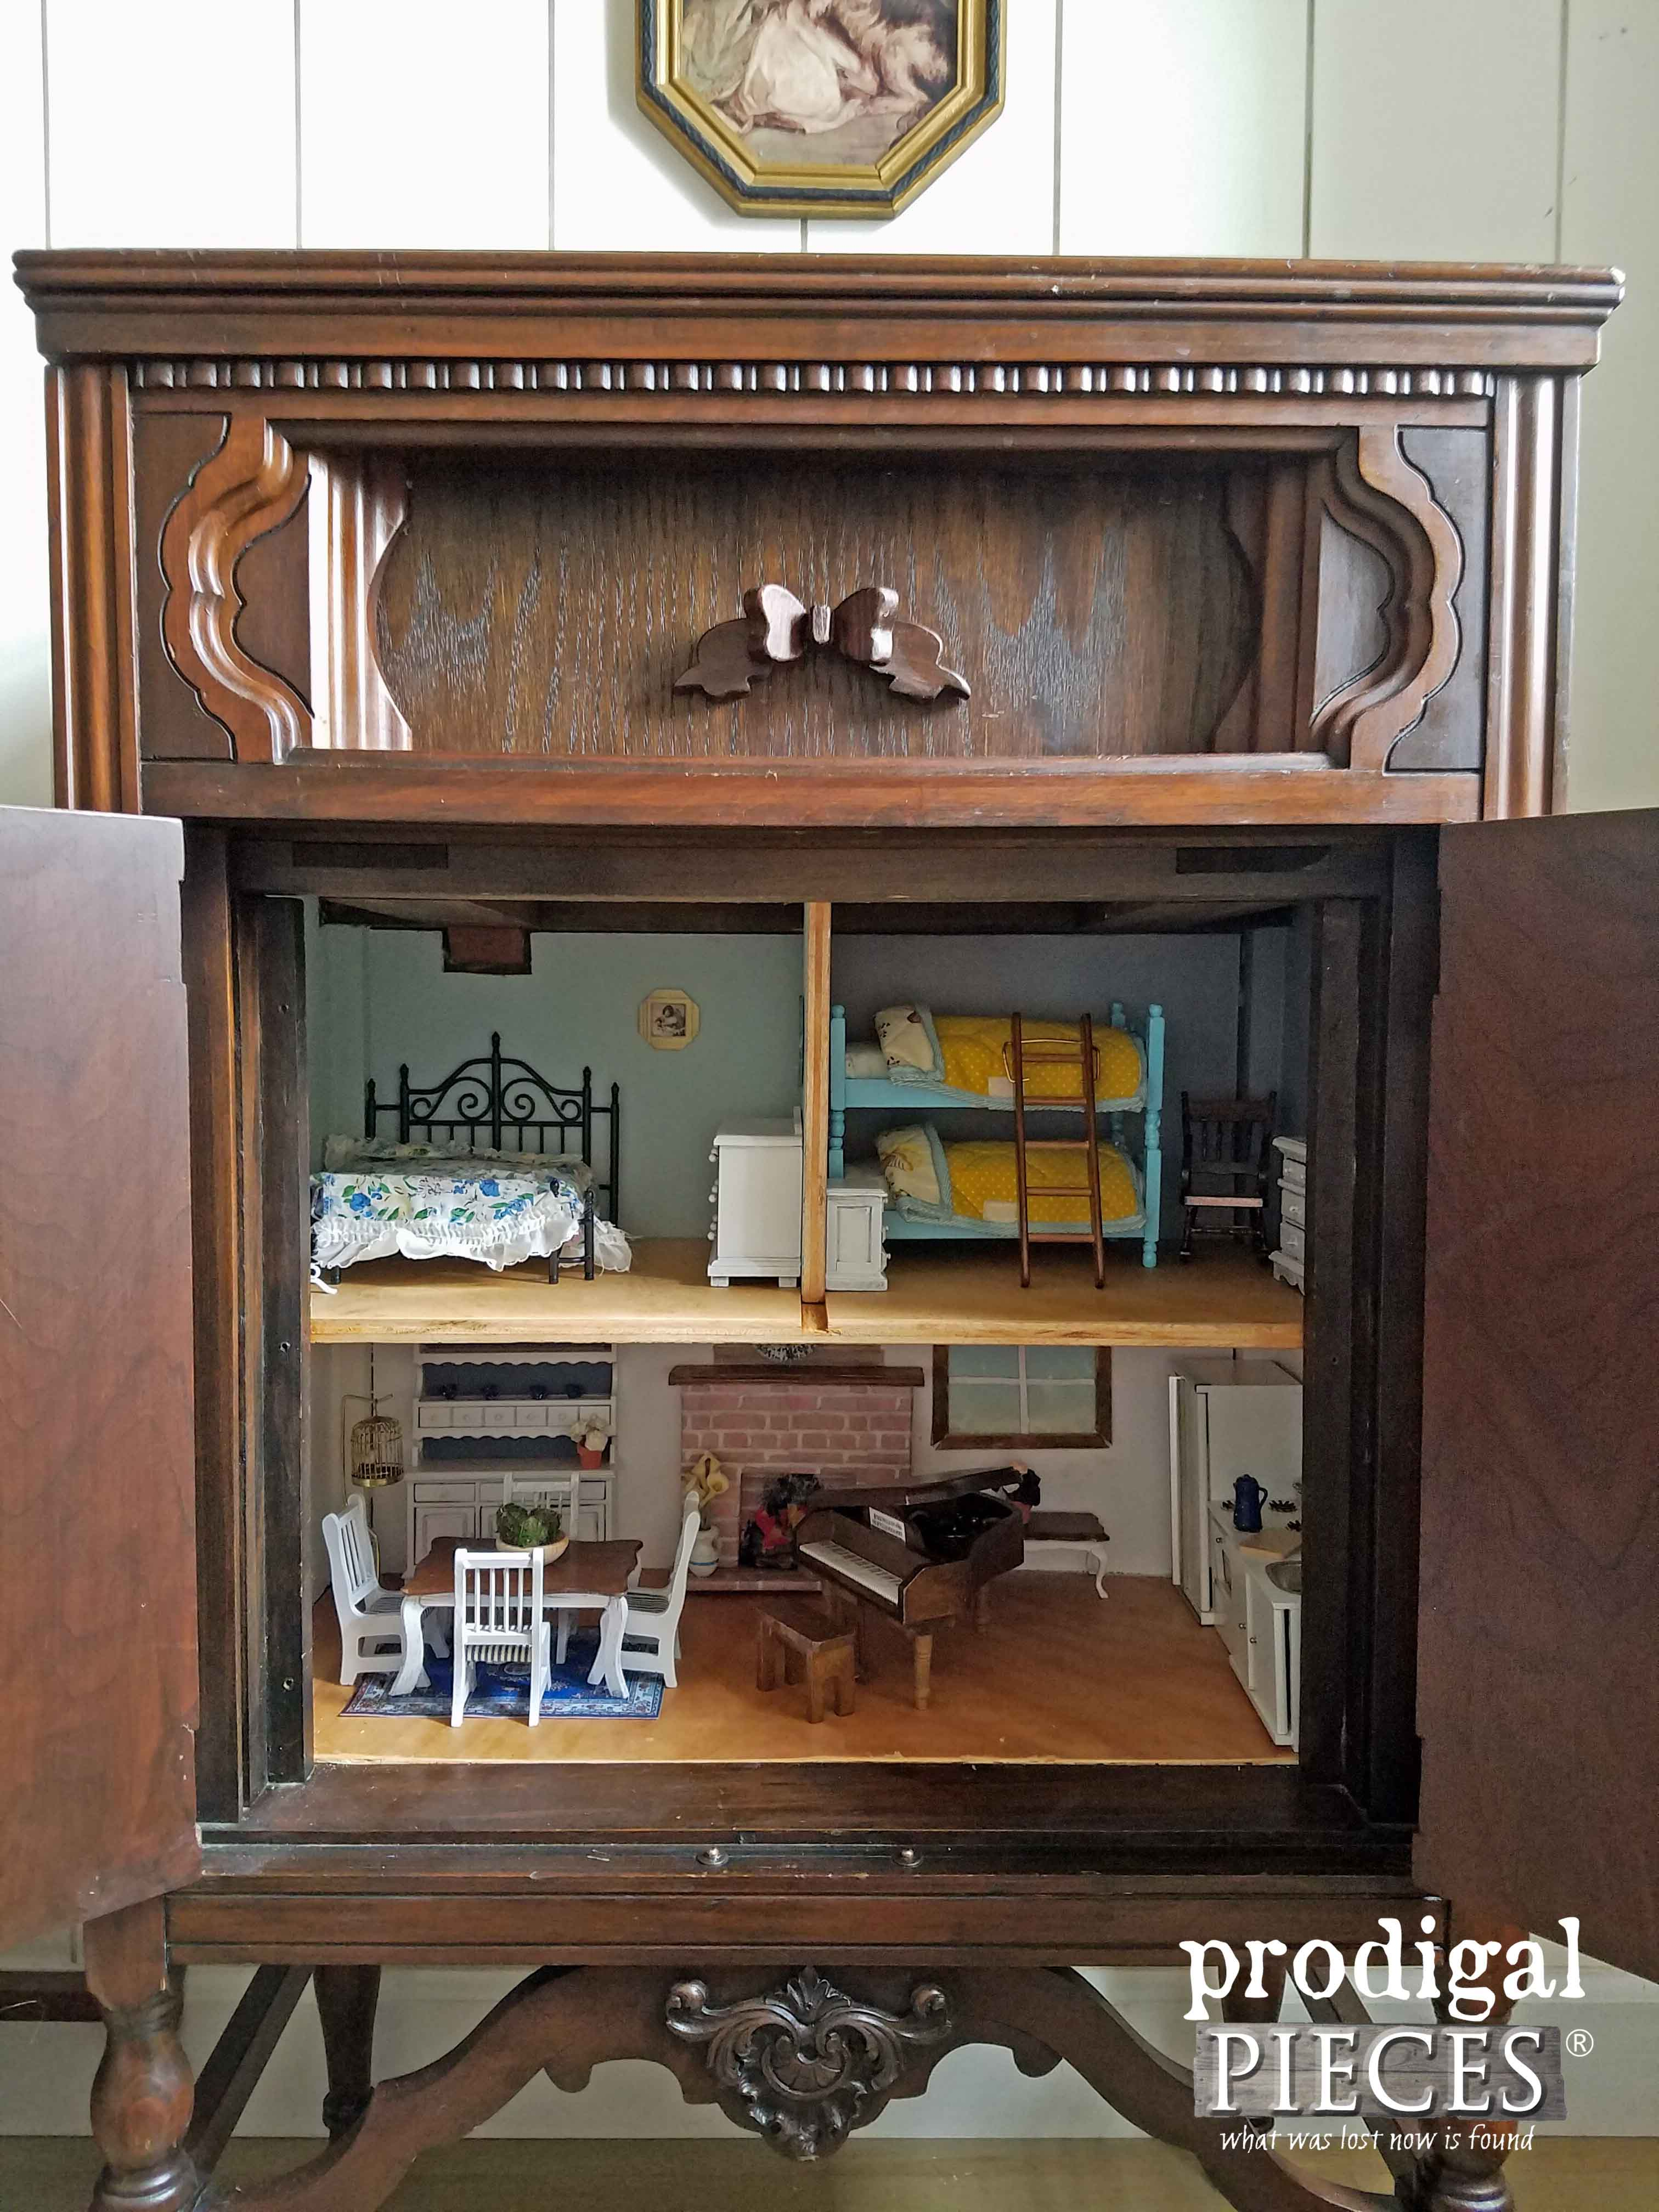 Antique Radio Cabinet Upcycled into Dollhouse by Prodigal Pieces | www.prodigalpieces.com